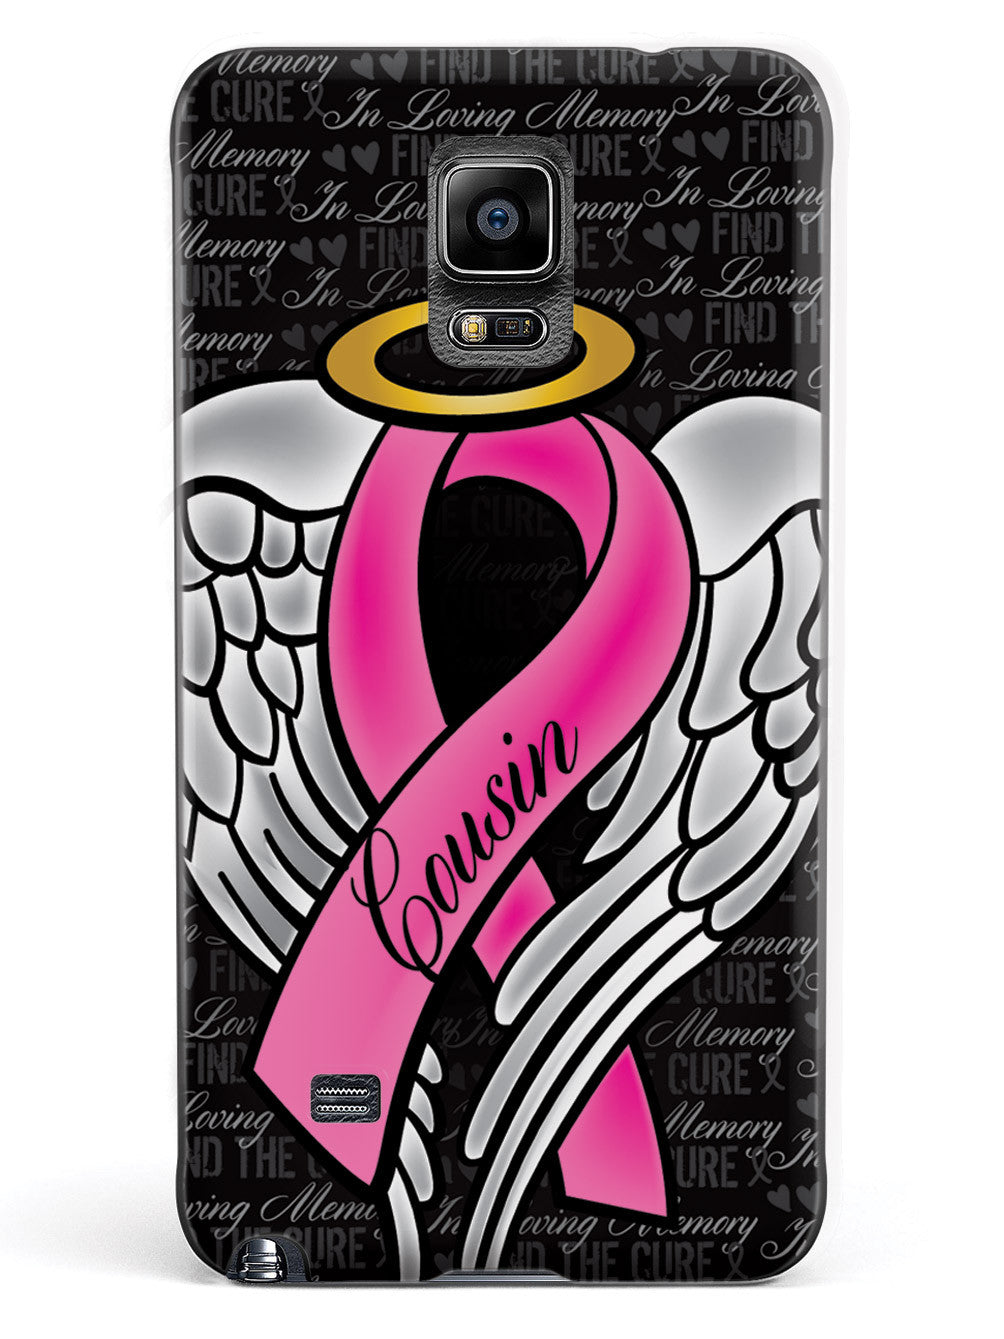 In Loving Memory of My Cousin - Pink Ribbon Case